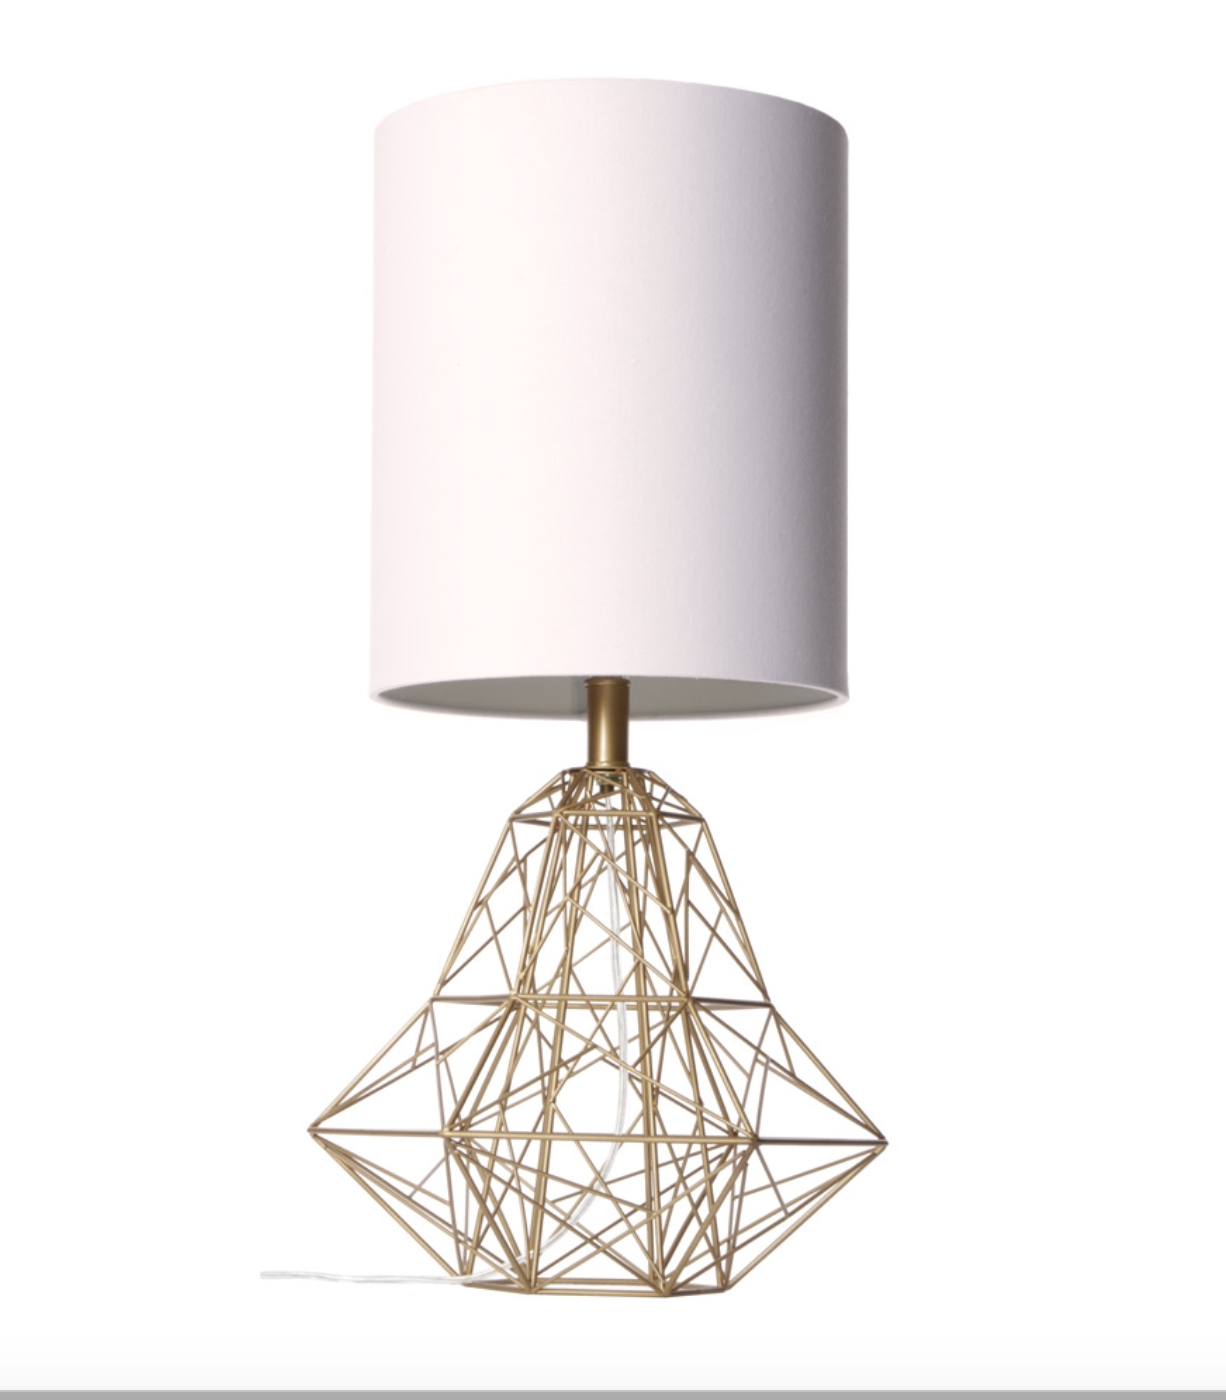 Bedroom Lamps Sydney: 8 Fabulous Table Lamps: Our Picks